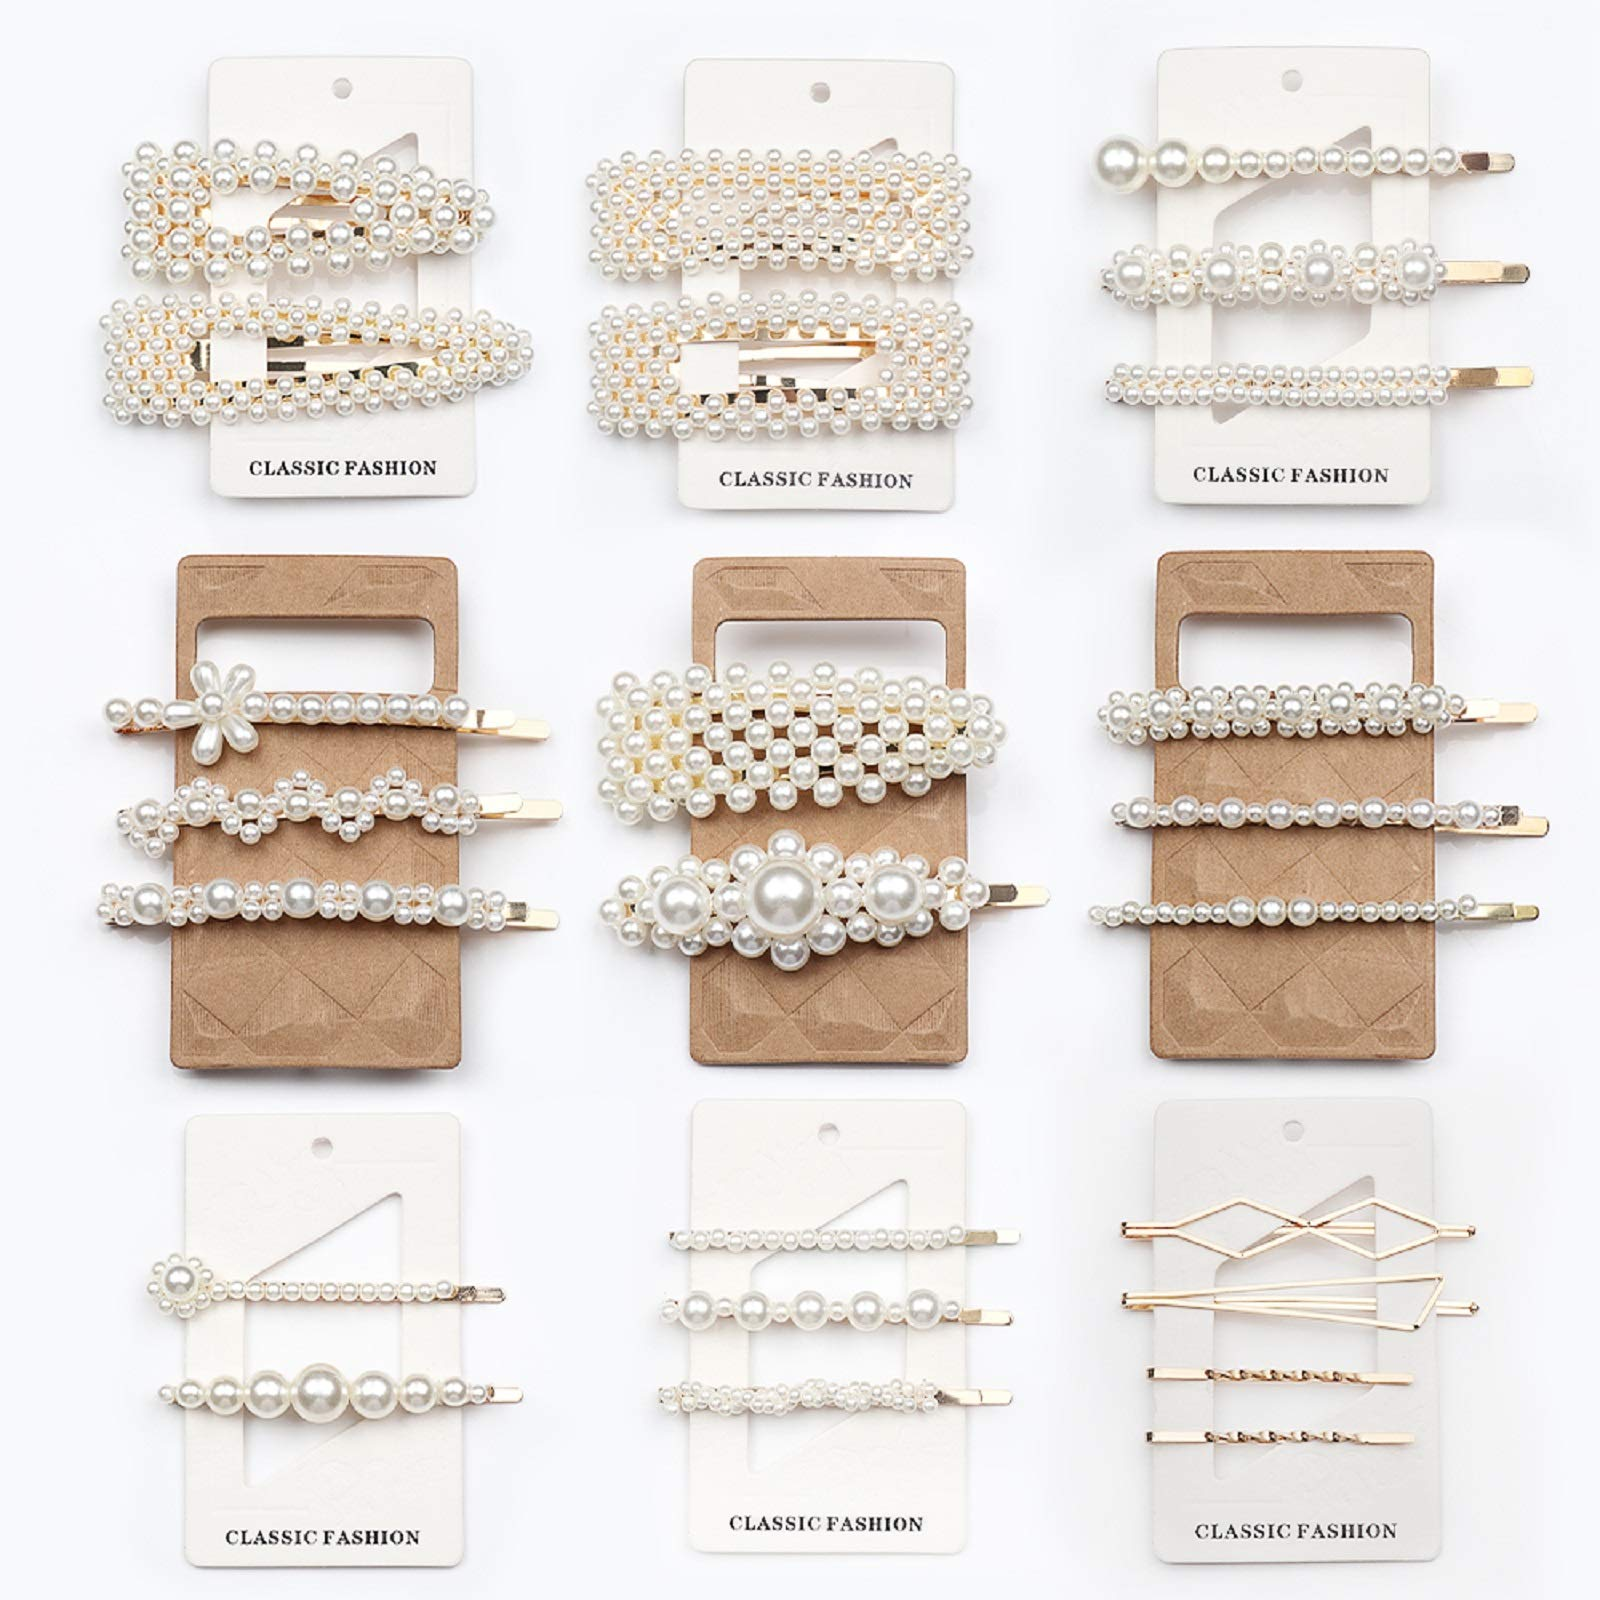 Cehomi 24 Pcs Pearl Hair Clips Barrettes Hairpins for Women Girls, Elegant Handmade Fashion Headwear Styling Tools Hair Accessories for Party Wedding Daily